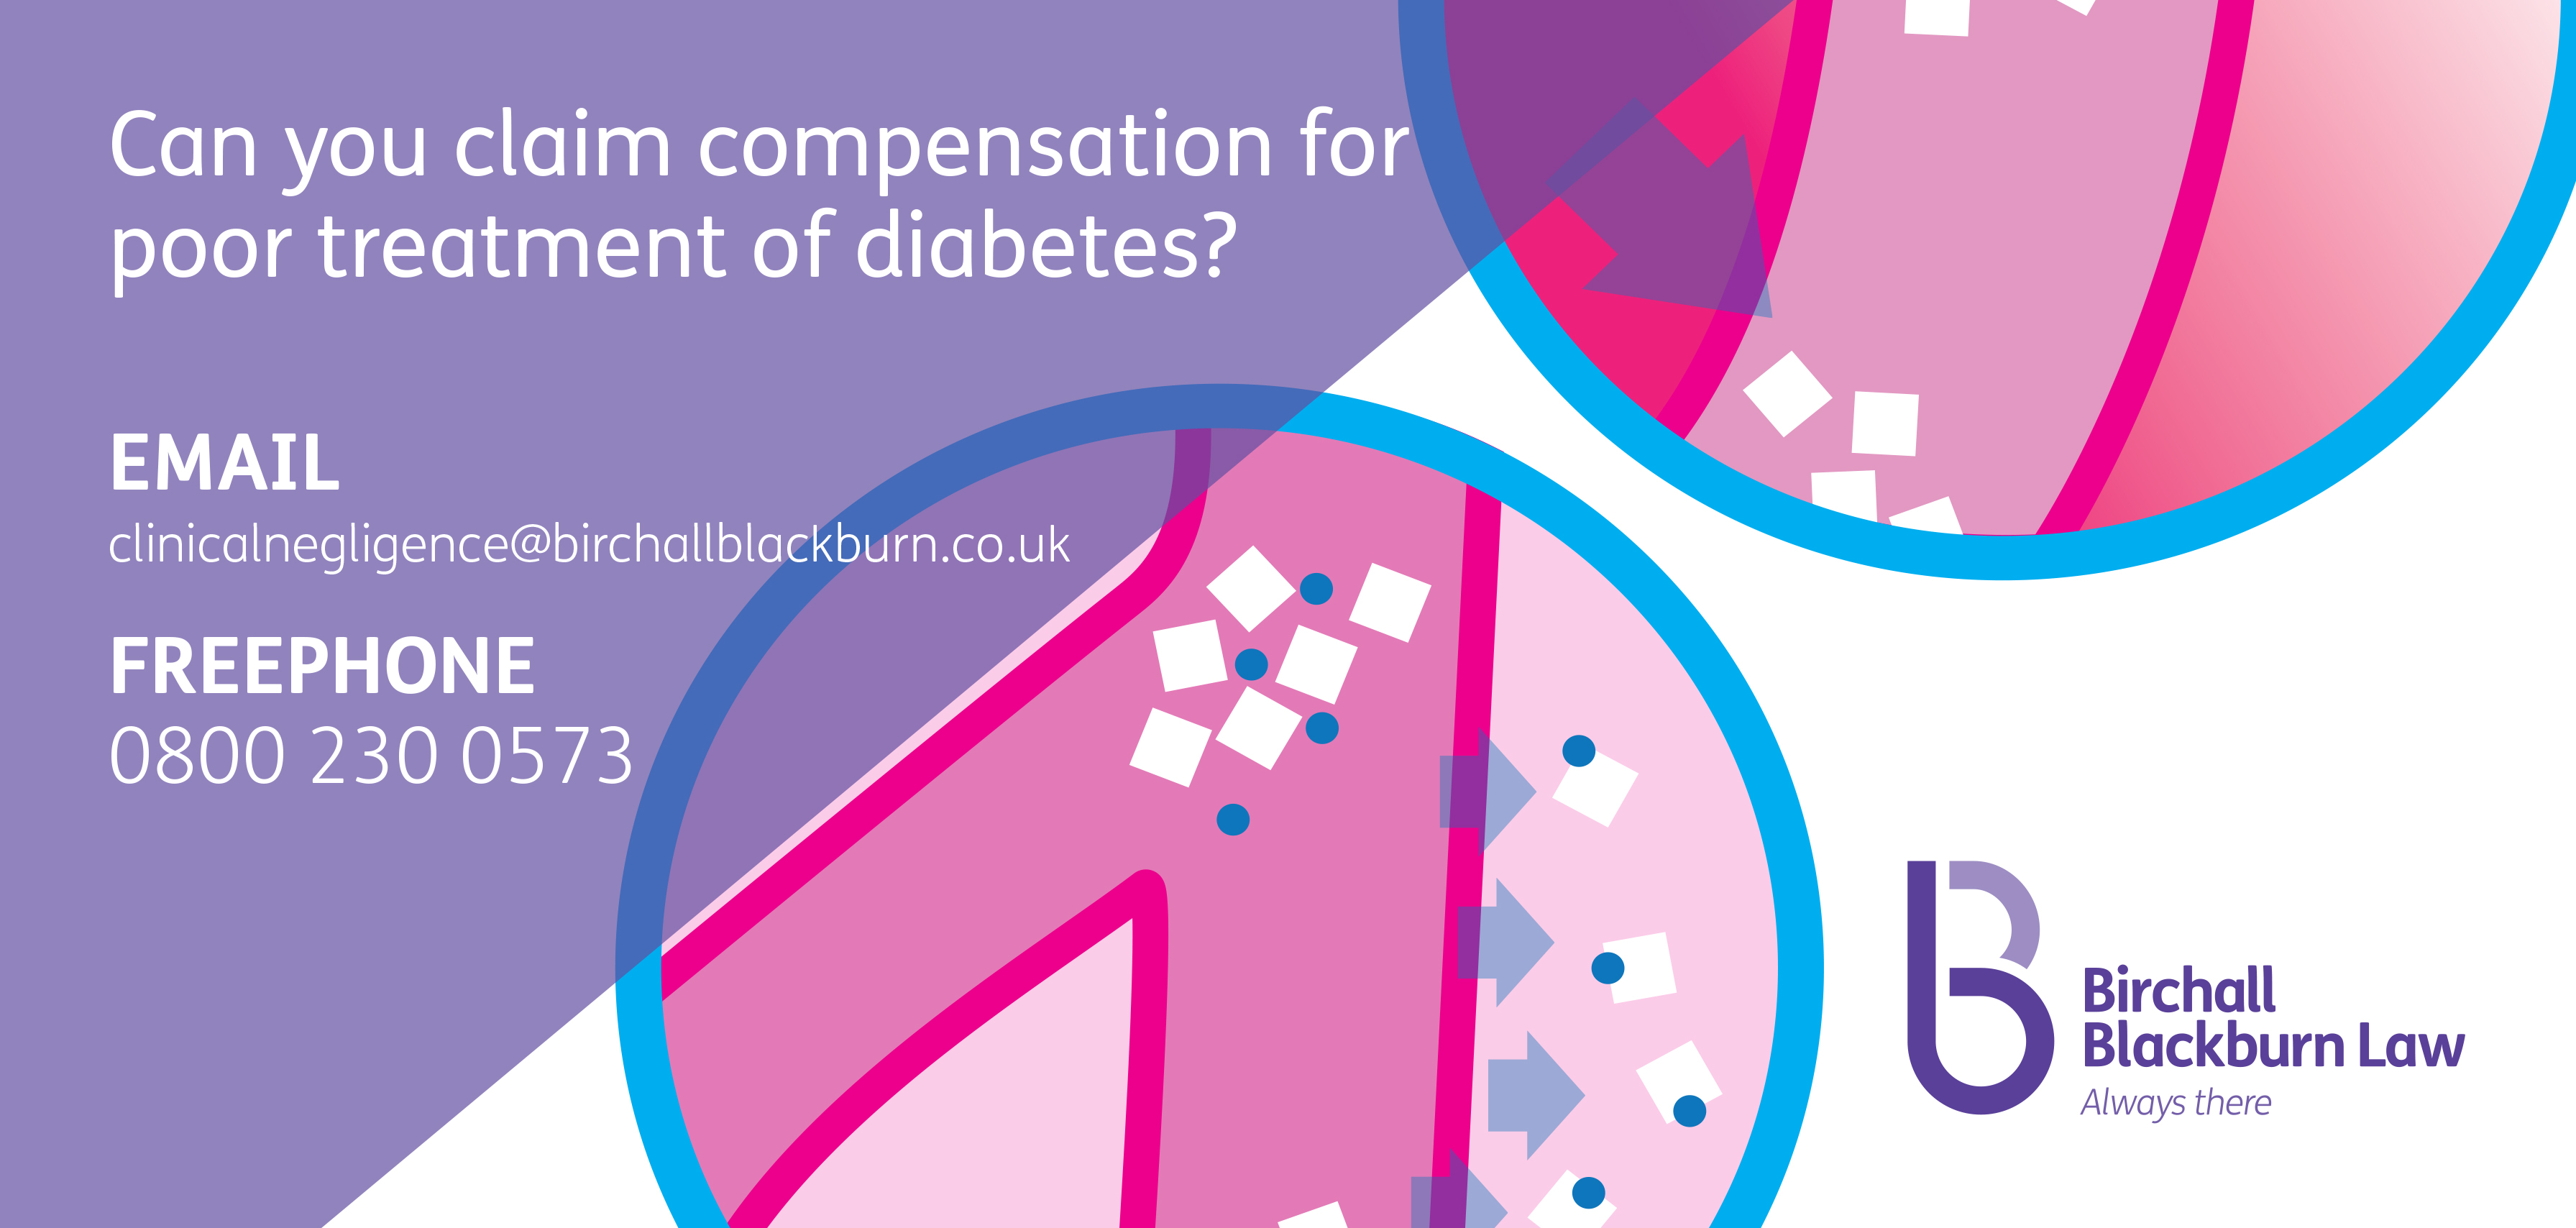 Could you claim compensation for poor treatment of diabetes? Speak to Birchall Blackburn Law about medical negligence.